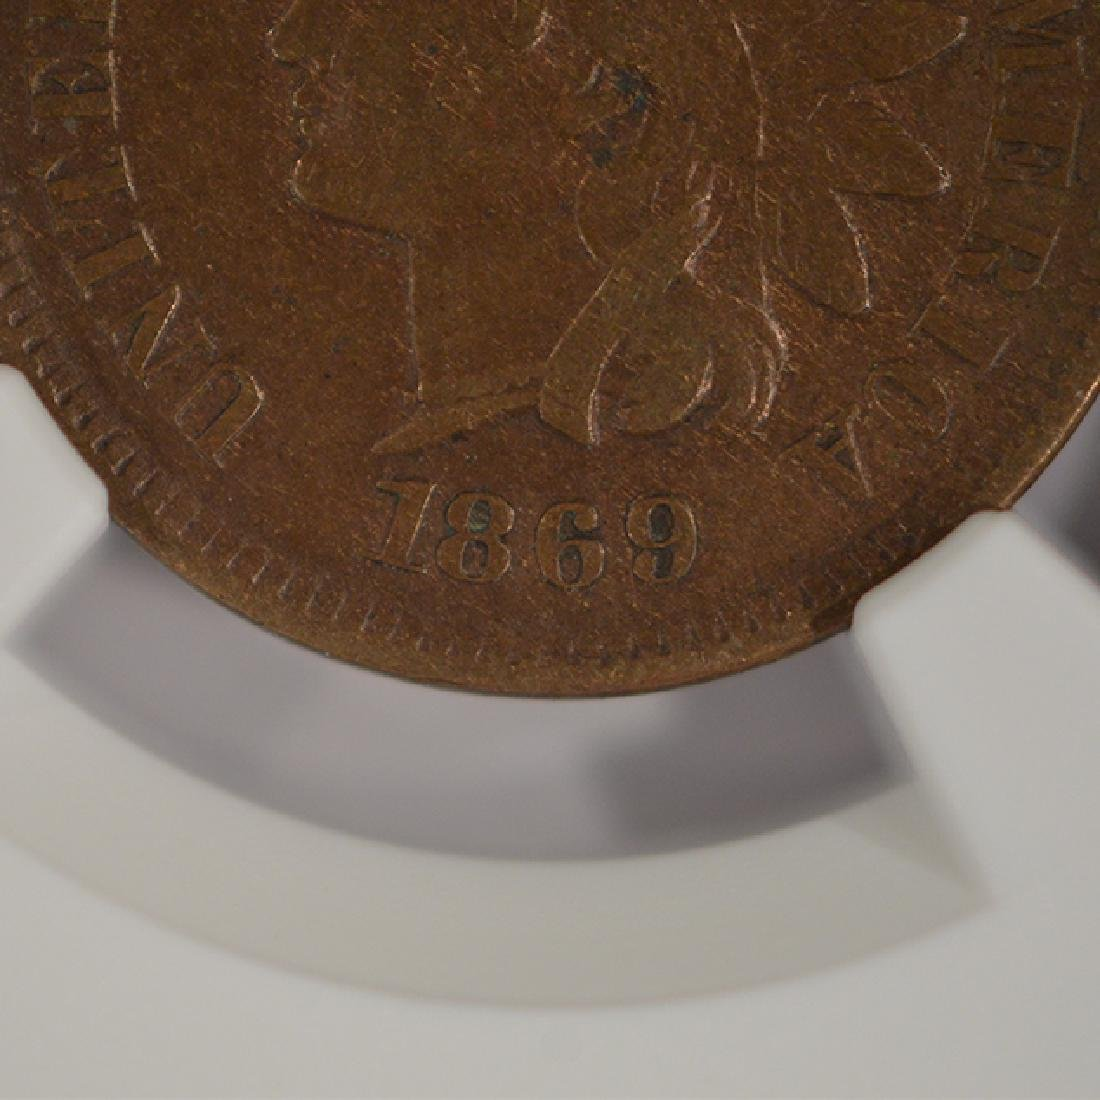 1869/69 Indian Cent NGC VF35BN - 2